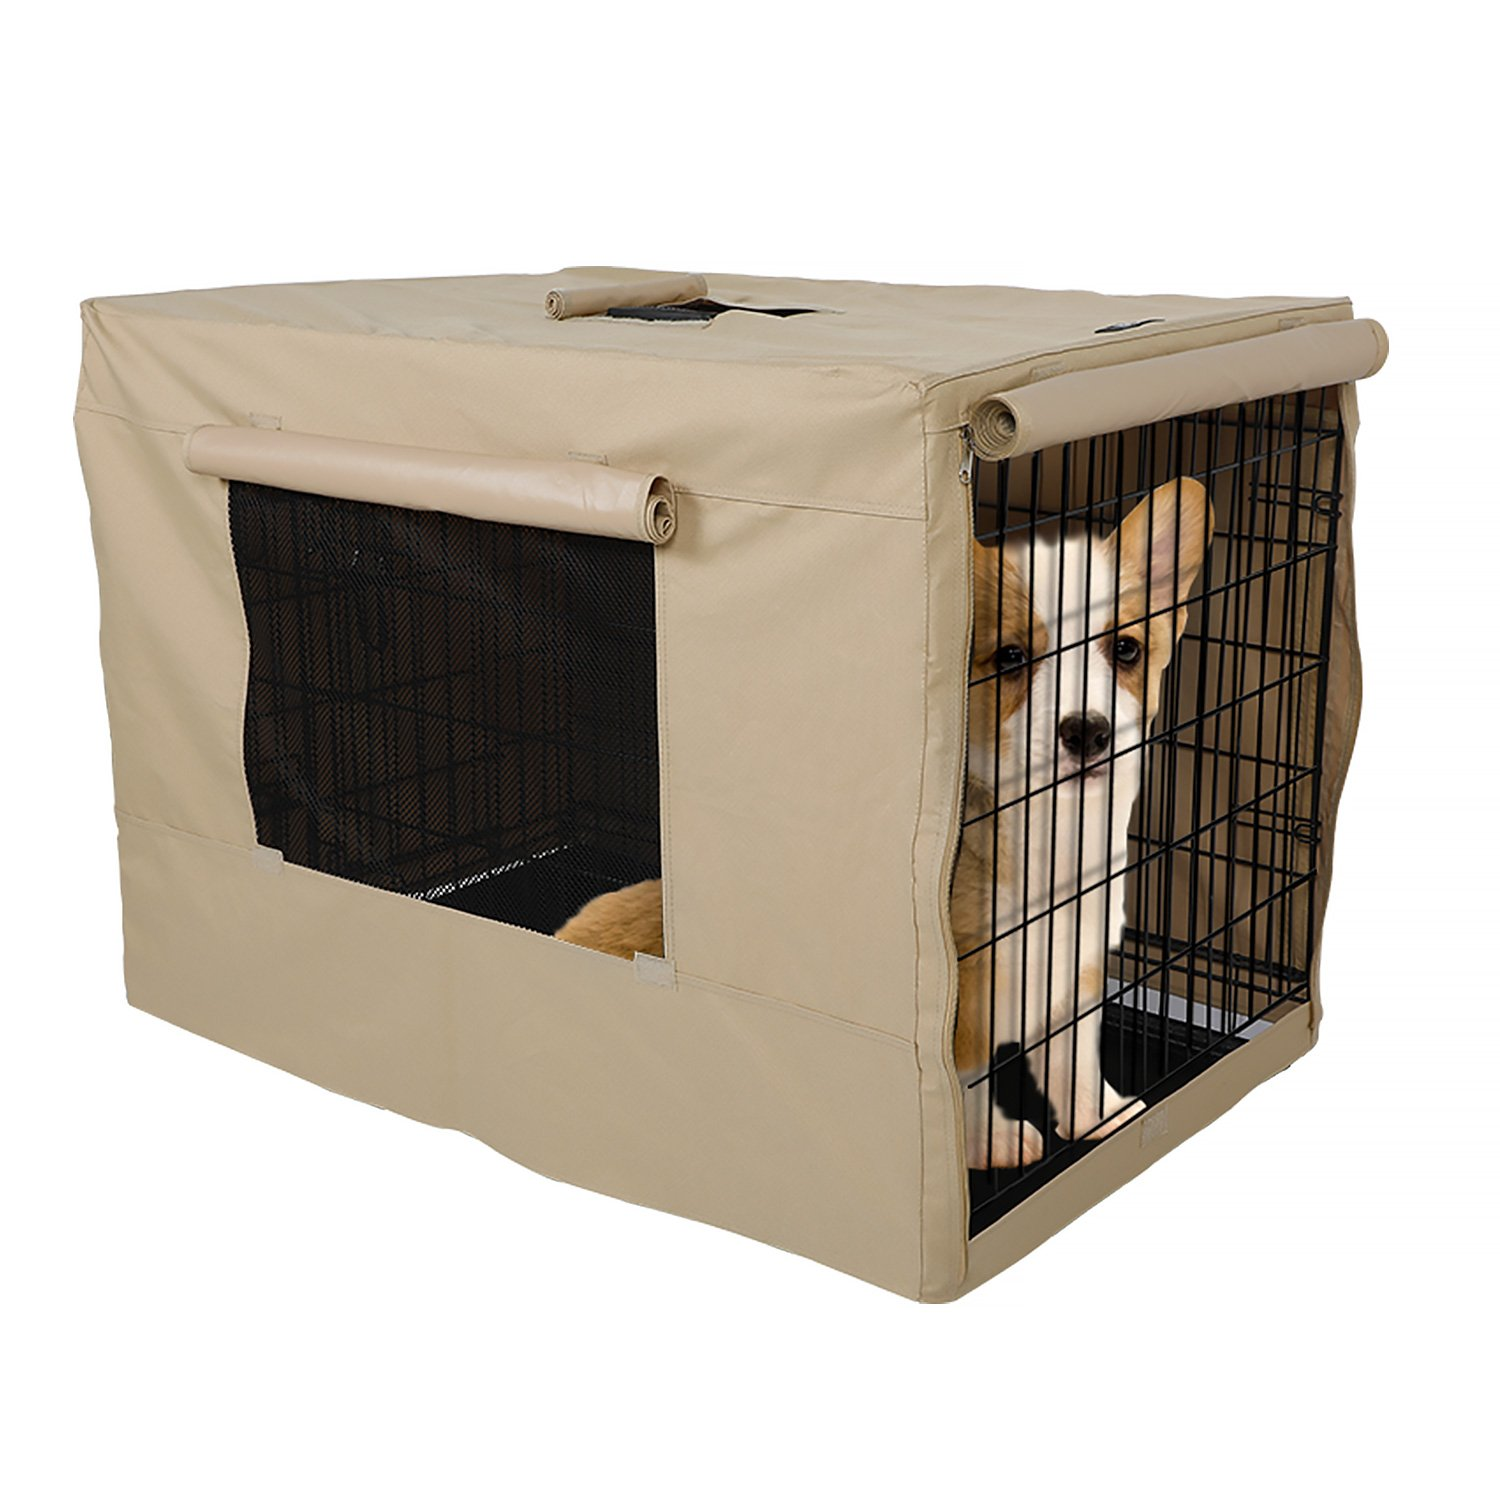 X-ZONE PET Indoor/Outdoor Dog Crate Cover, Polyester Crate Cover or Durable Windproof Kennel Covers for Wire dog Crates (30-Inch) by X-ZONE PET (Image #3)